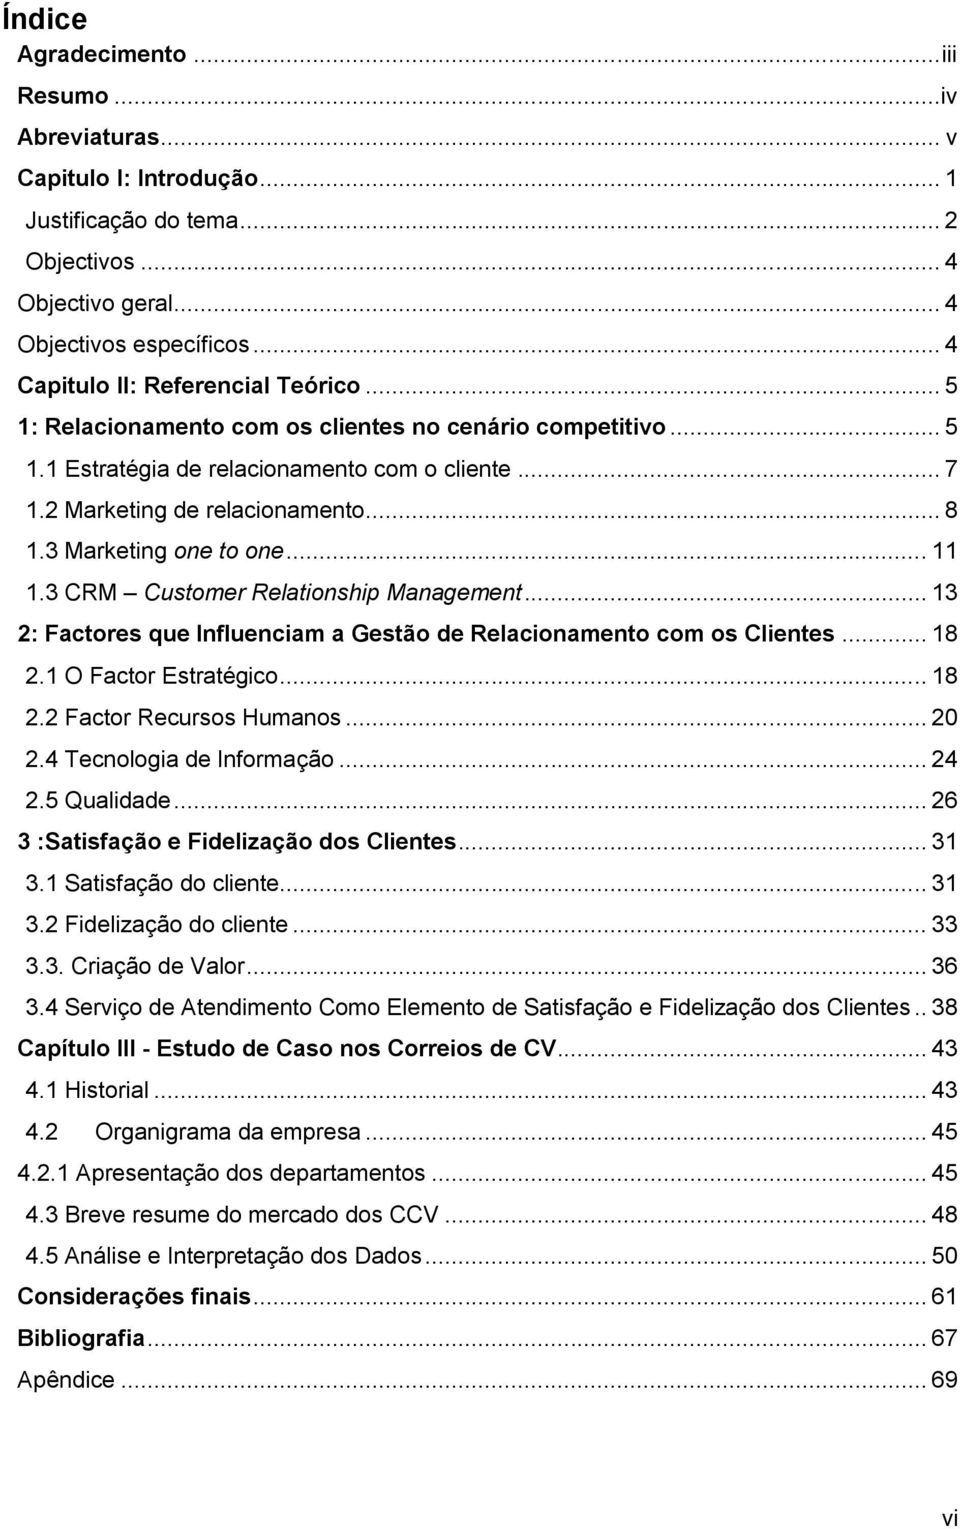 3 Marketing one to one... 11 1.3 CRM Customer Relationship Management... 13 2: Factores que Influenciam a Gestão de Relacionamento com os Clientes... 18 2.1 O Factor Estratégico... 18 2.2 Factor Recursos Humanos.